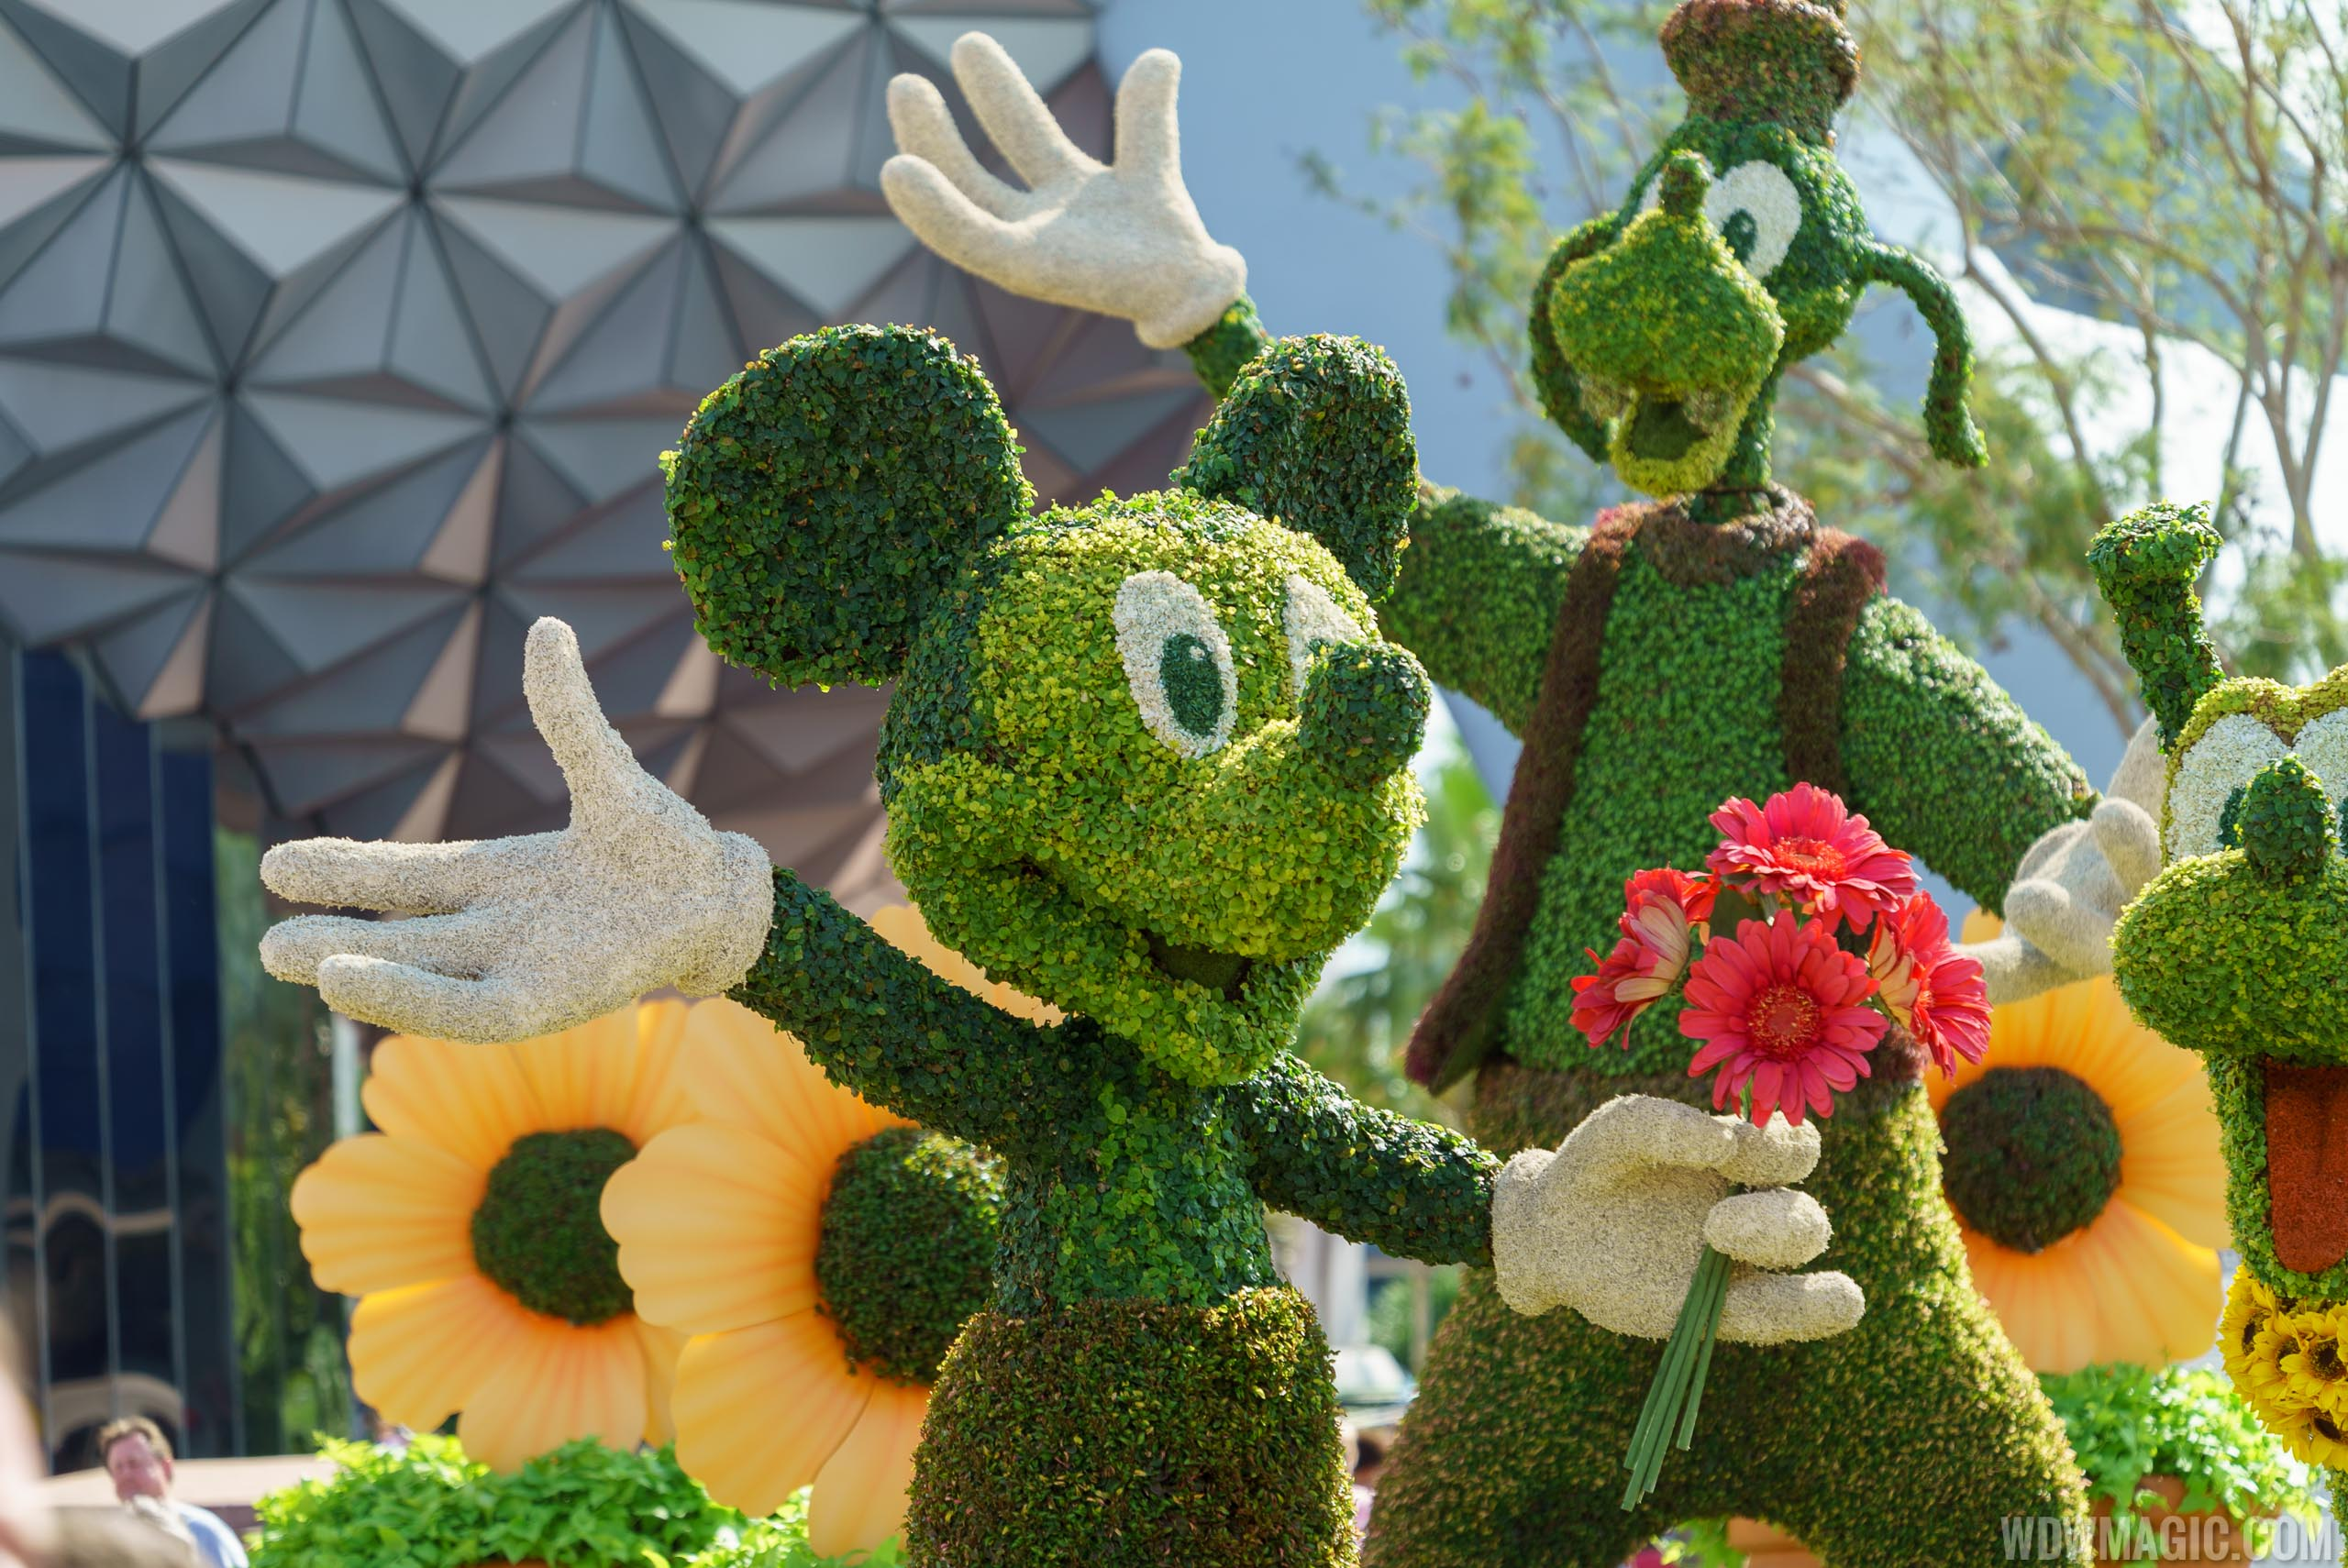 Mickey Mouse is one of the main entrance topiary